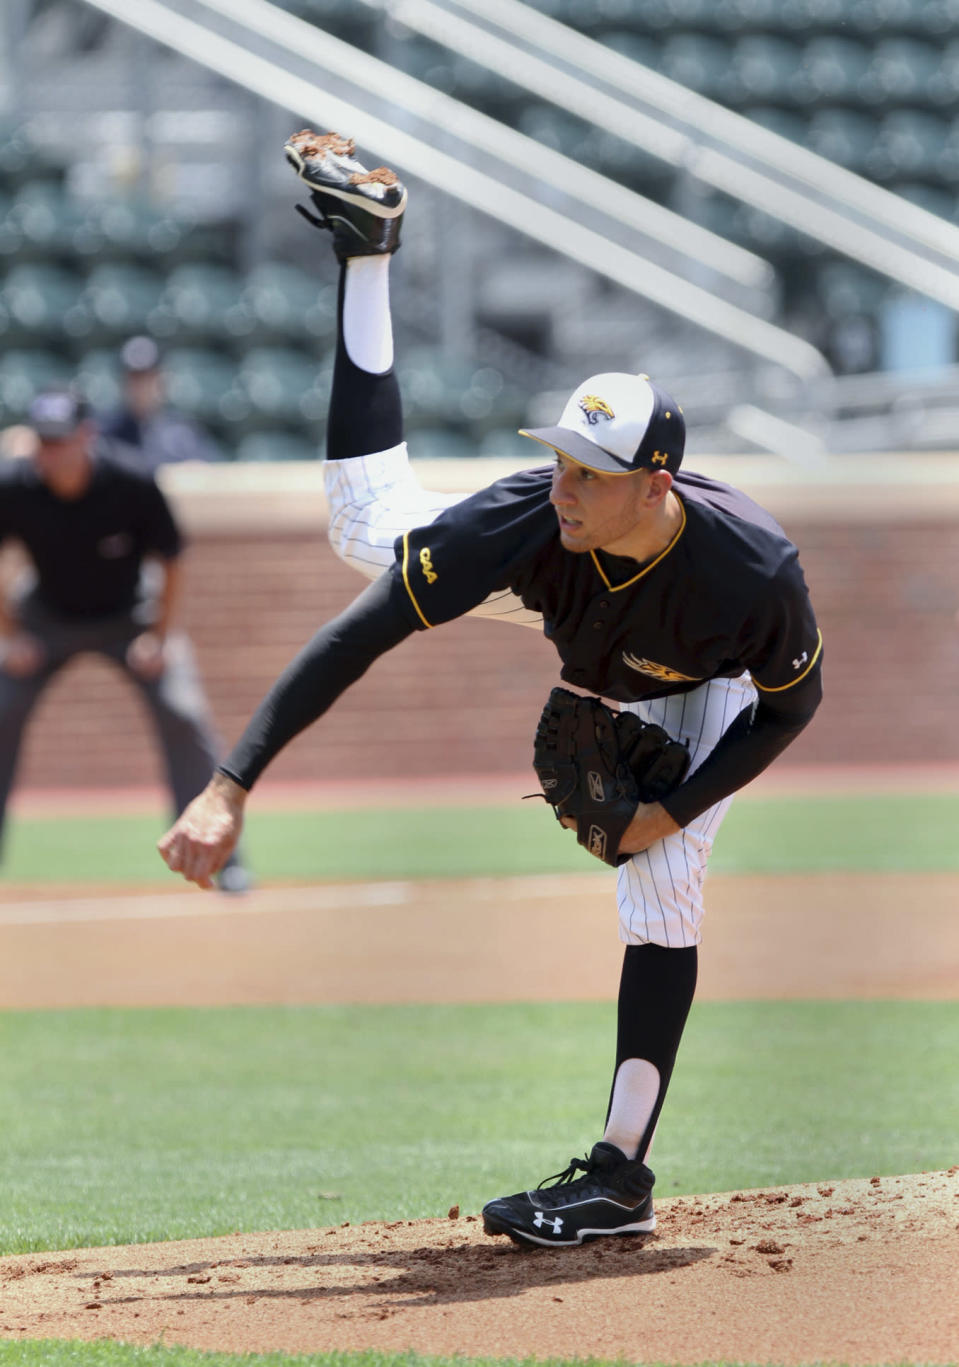 Towson's Mike Volpe follows through on a pitch in the first inning against Florida Atlantic during an NCAA college baseball tournament regional game in Chapel Hill, N.C., Friday, May 31, 2013. Volpe pitched into the eighth inning, giving up one unearned run, as Towson won 7-2. (AP Photo/Ted Richardson)